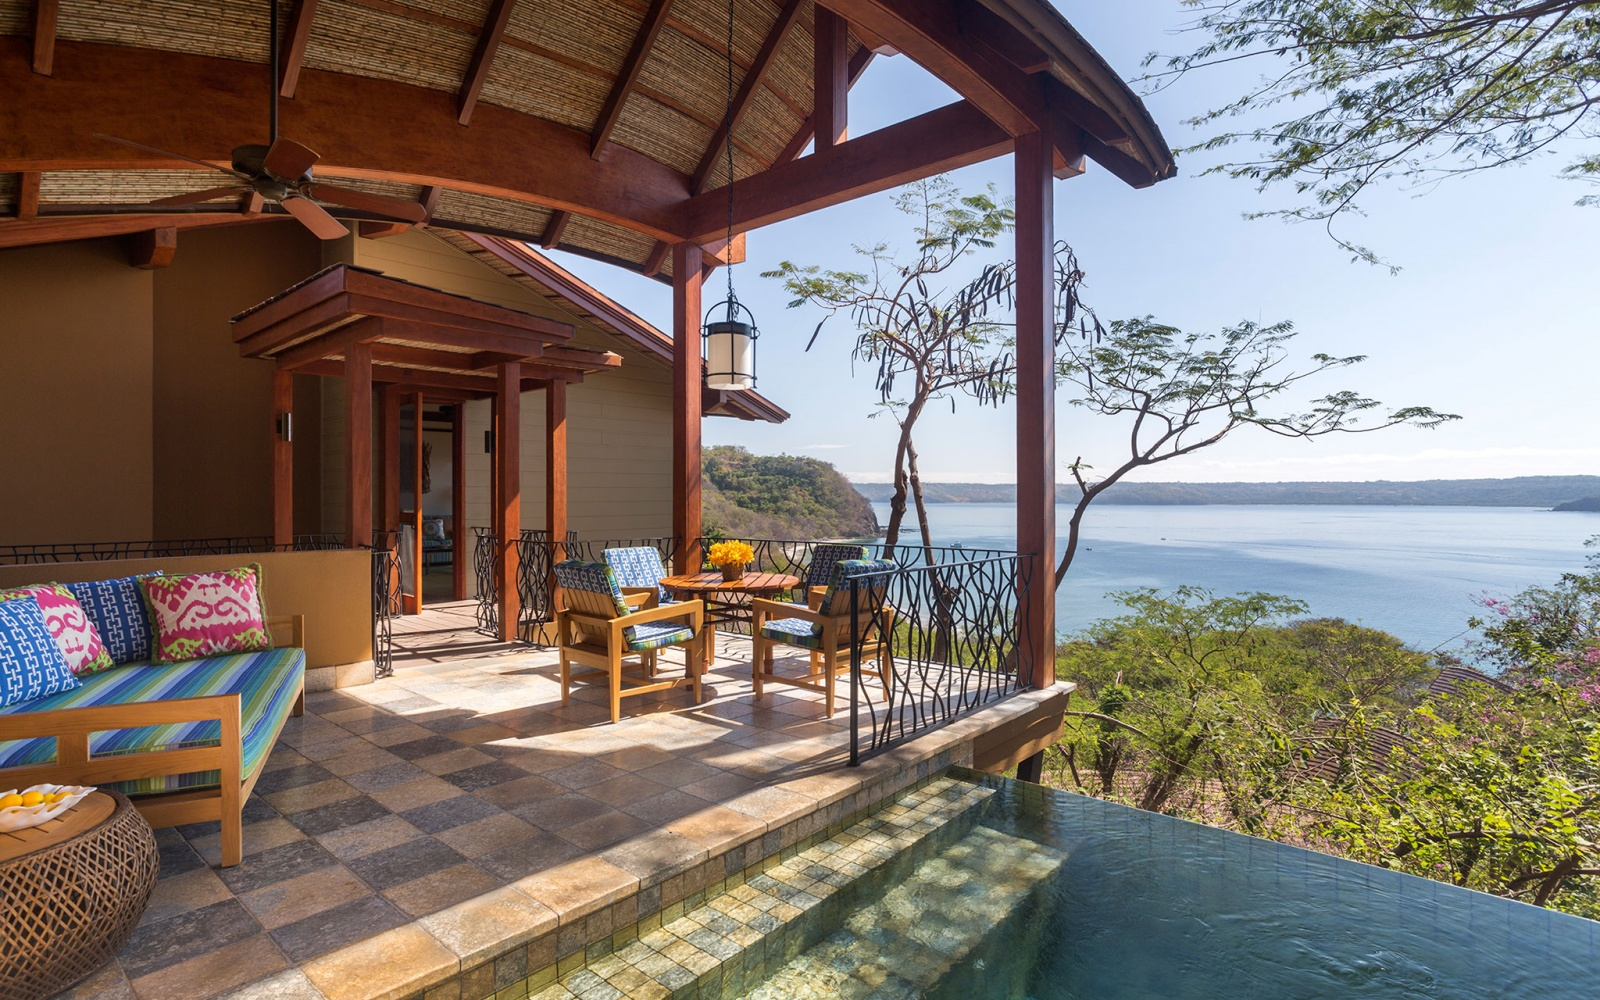 Four Seasons Resort Costa Rica At Peninsula Papagayo Guanacaste, Costa Rica